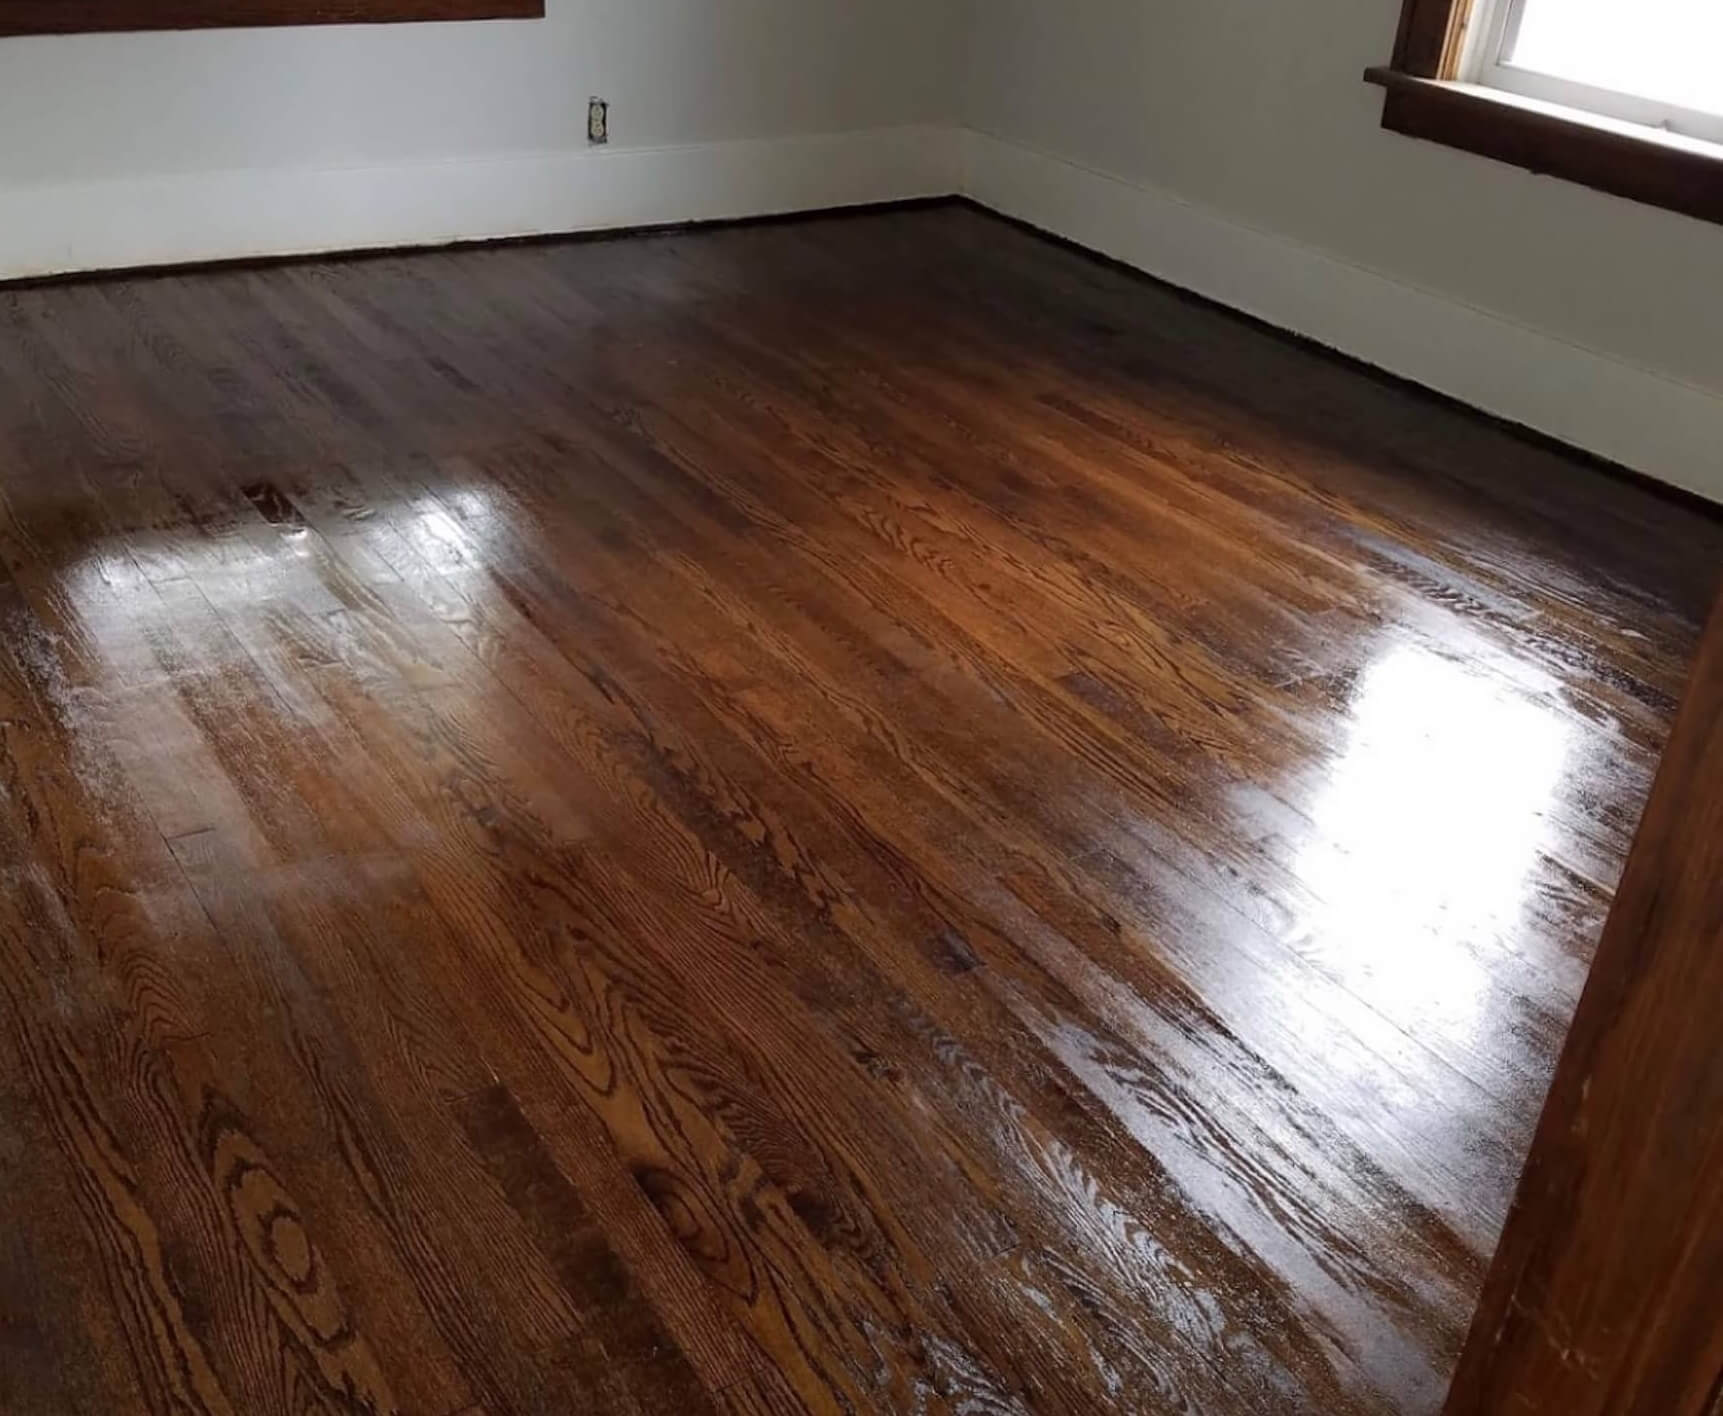 refinished and sparkling clean hardwood floor